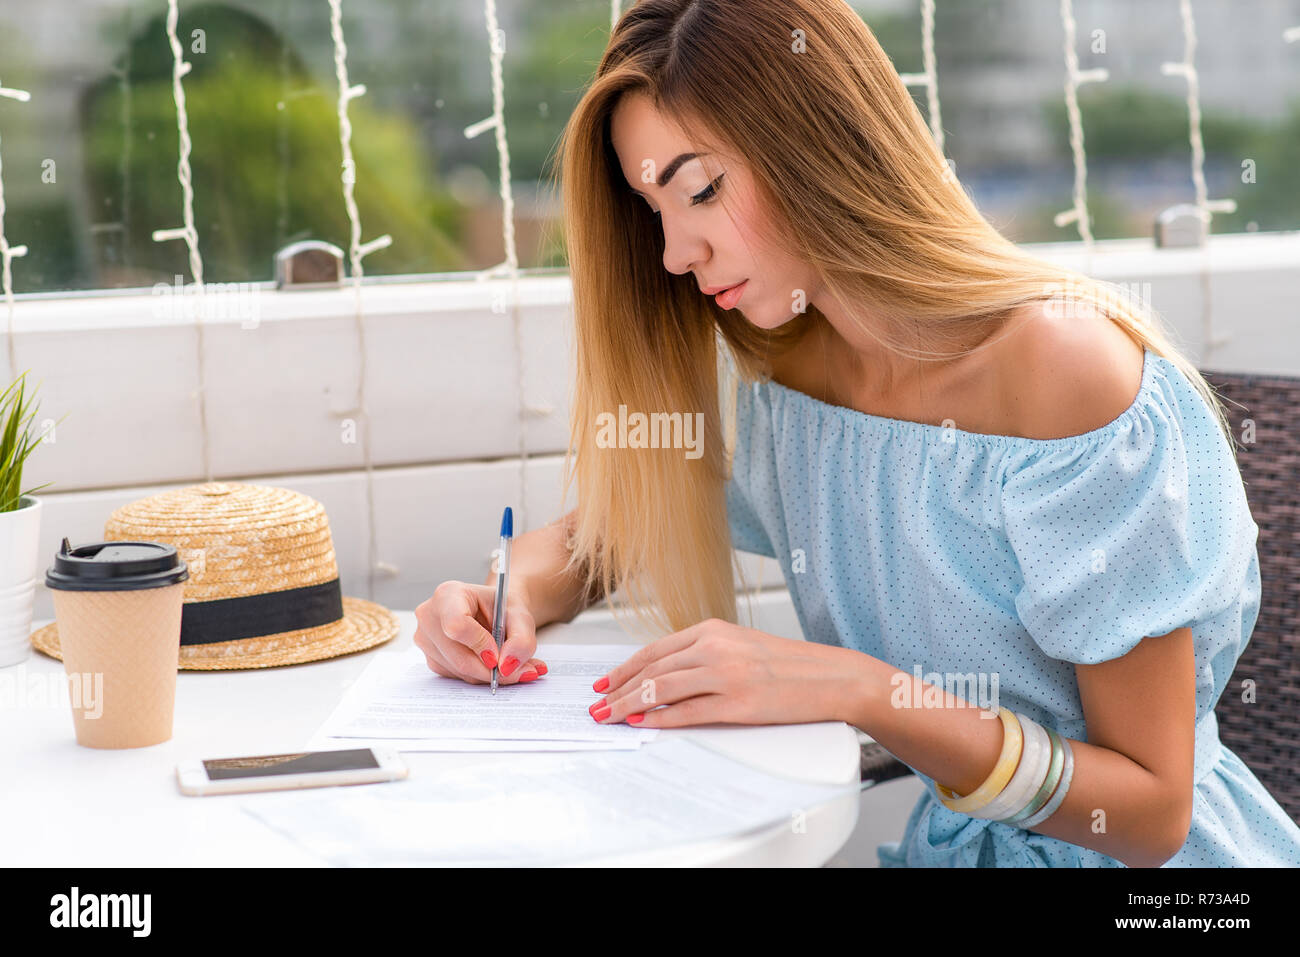 Beautiful girl in blue dress, tanned skin with long hair. Summer sitting in a cafe. He holds a pen in his hands and fills important documents, signs a contract, draws up a legal document in writing. - Stock Image